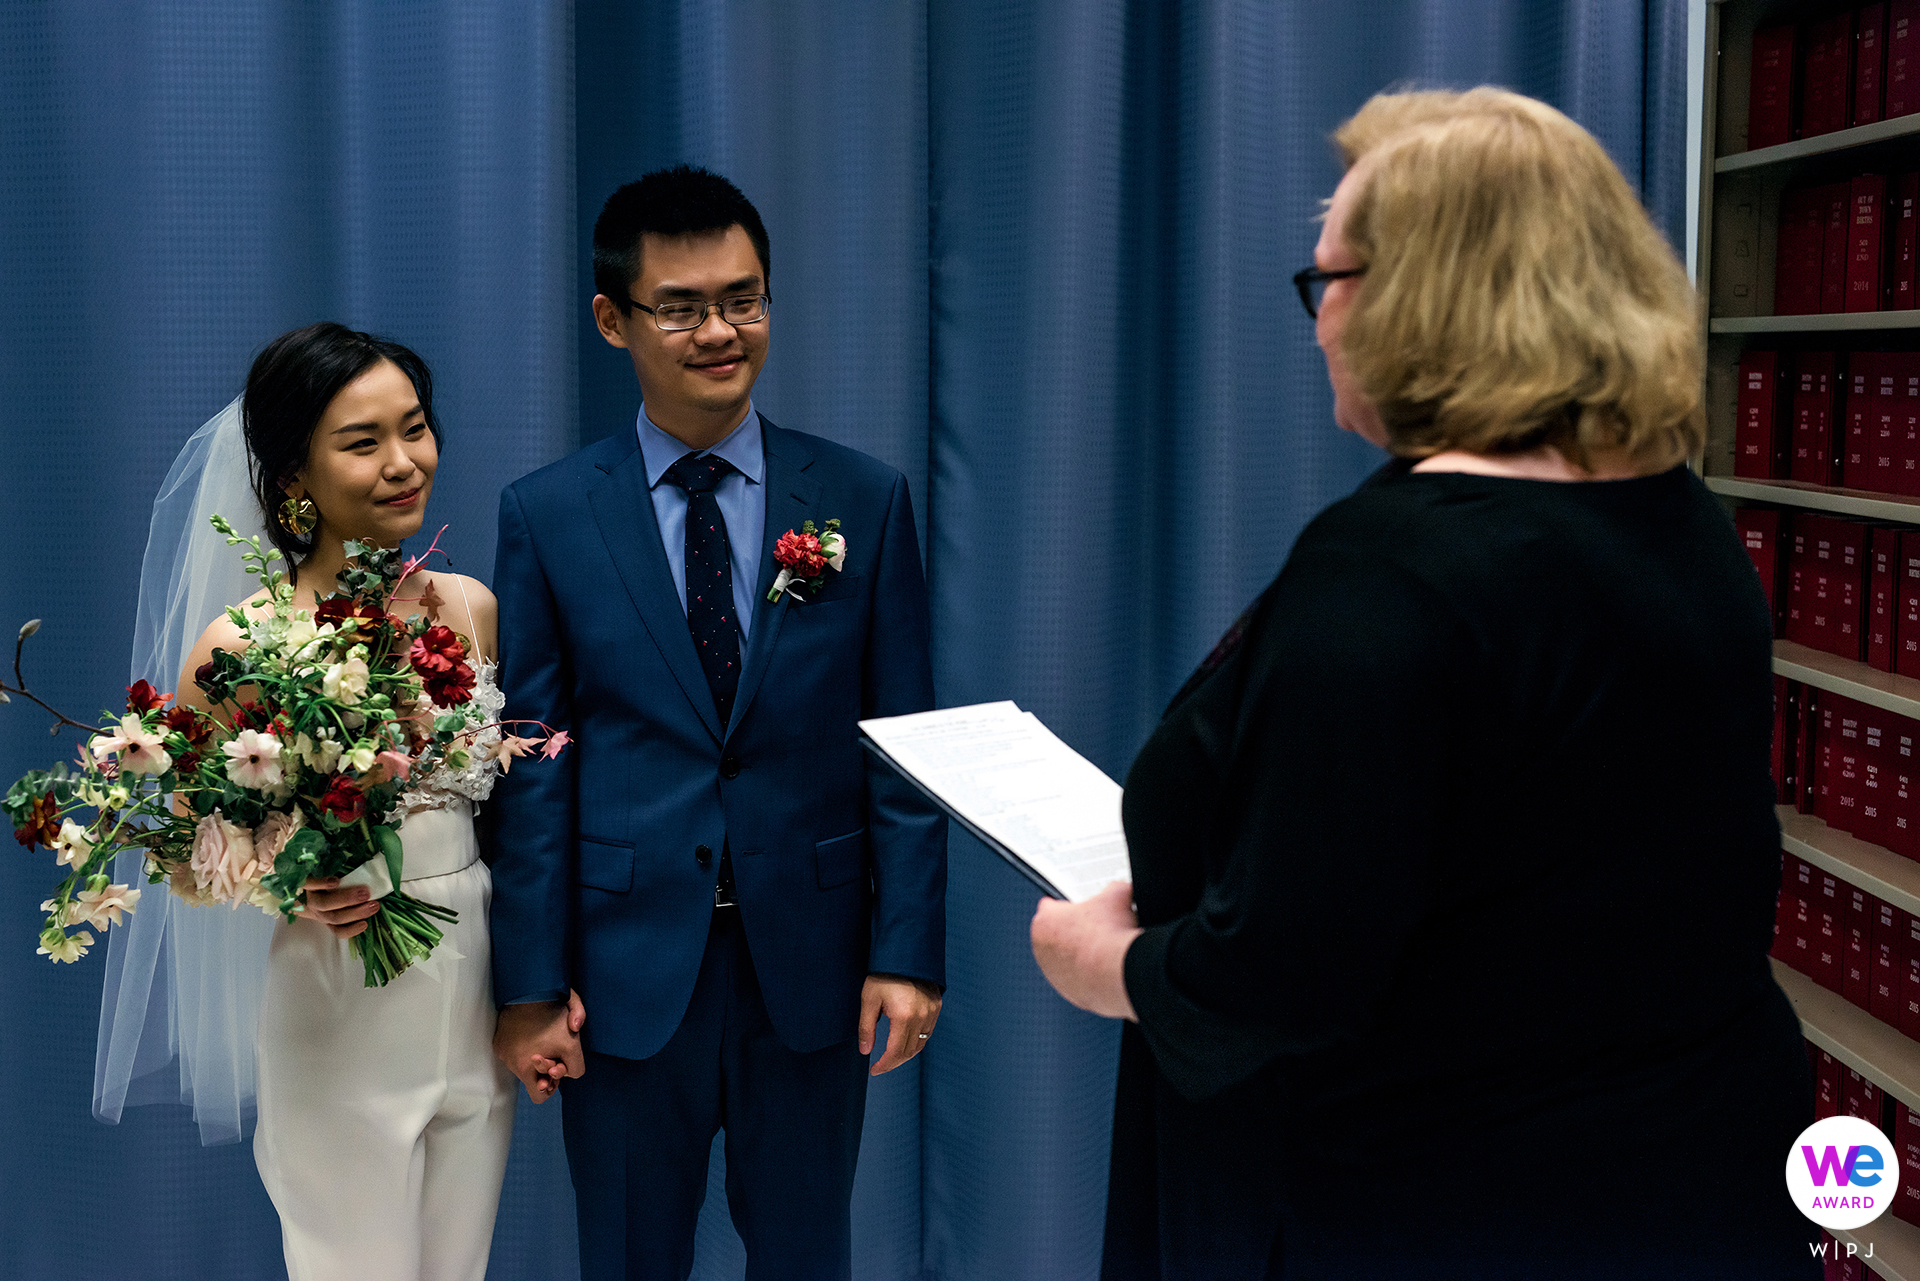 Boston's Best City Hall Wedding Photographer   The couple stand with their officiant during the civil elopement